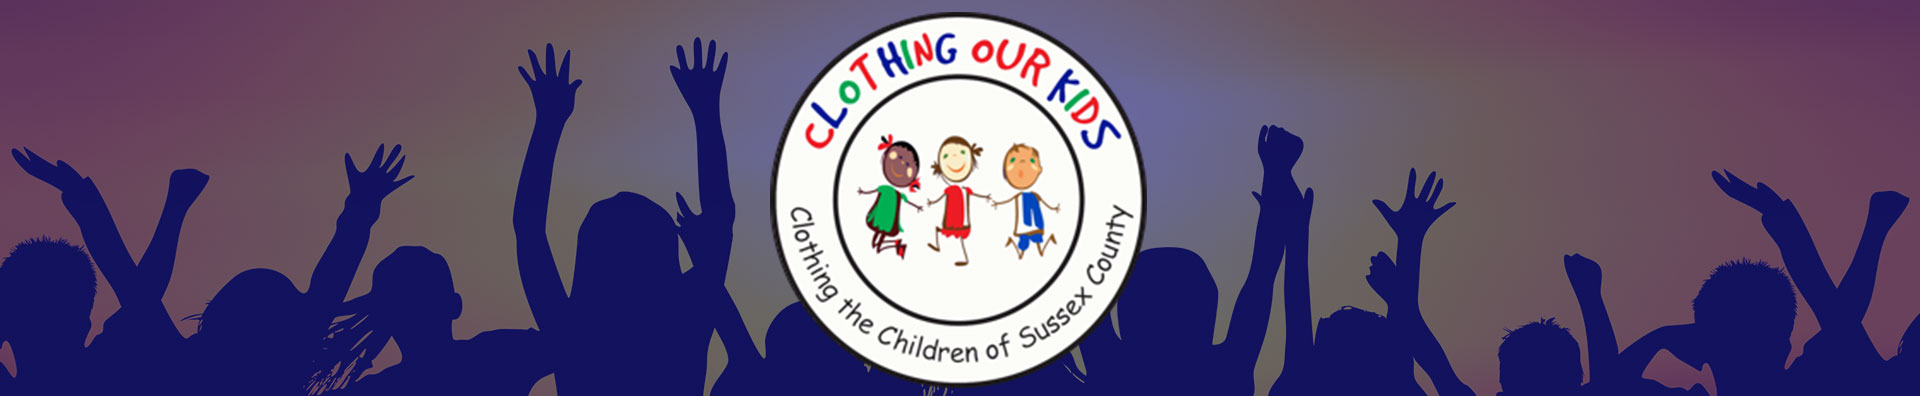 Clothing Our Kids